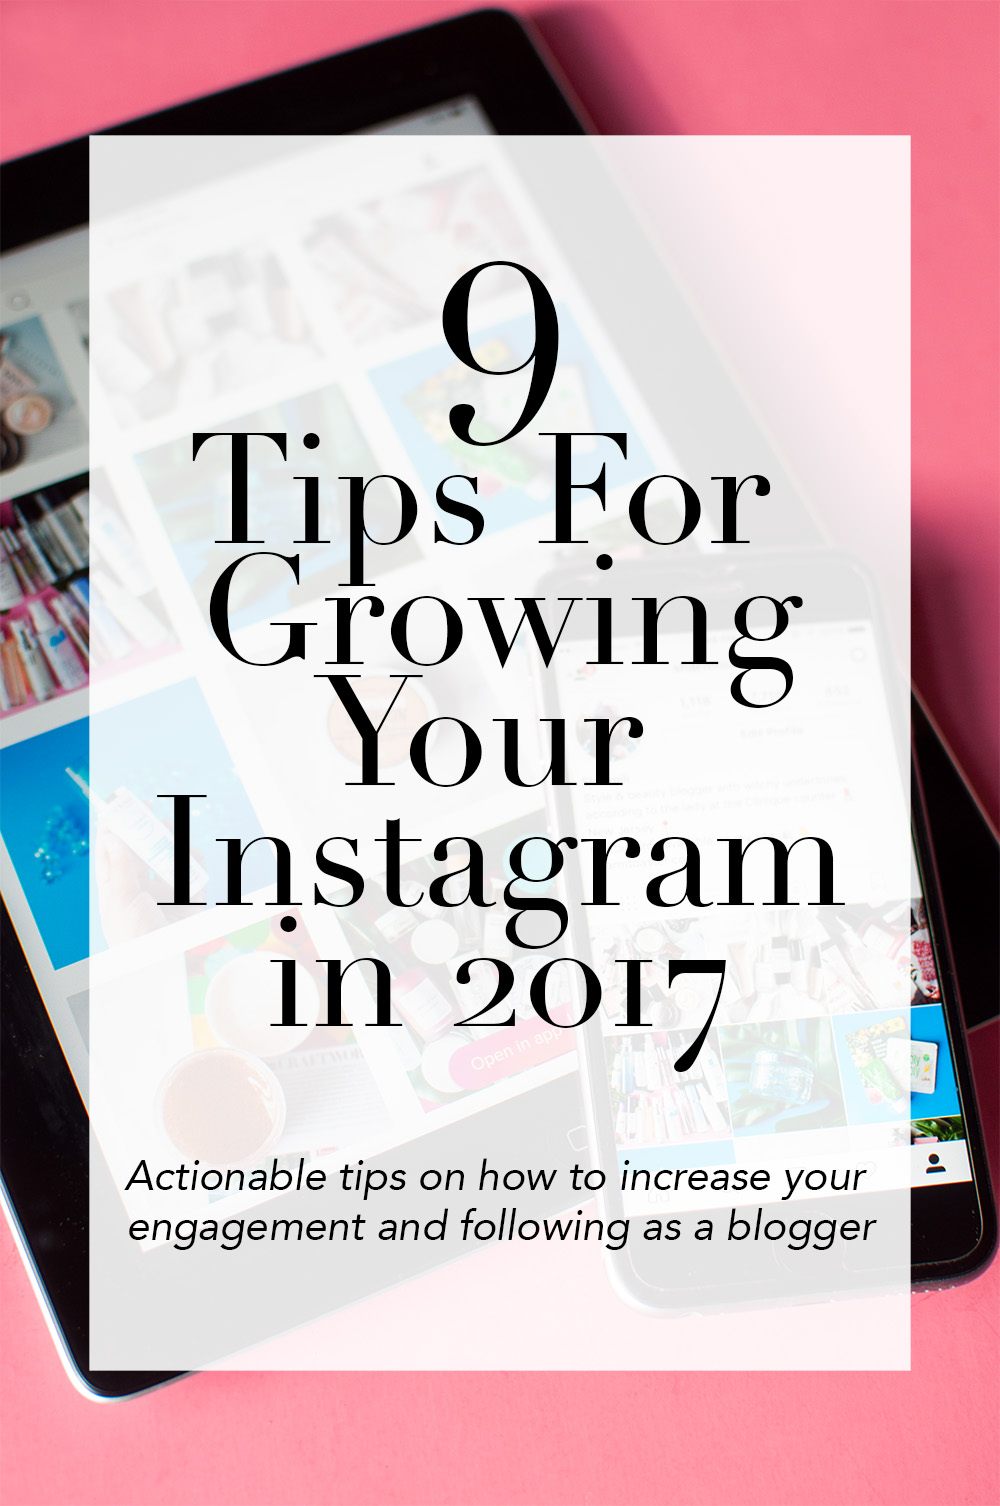 how to grow you instagram, instagram growth tips, how to gain instagram followers, how to increase instagram engagement, instagram blogger tips, instagram tips 2017, how to increase instagram followers and engagement for bloggers